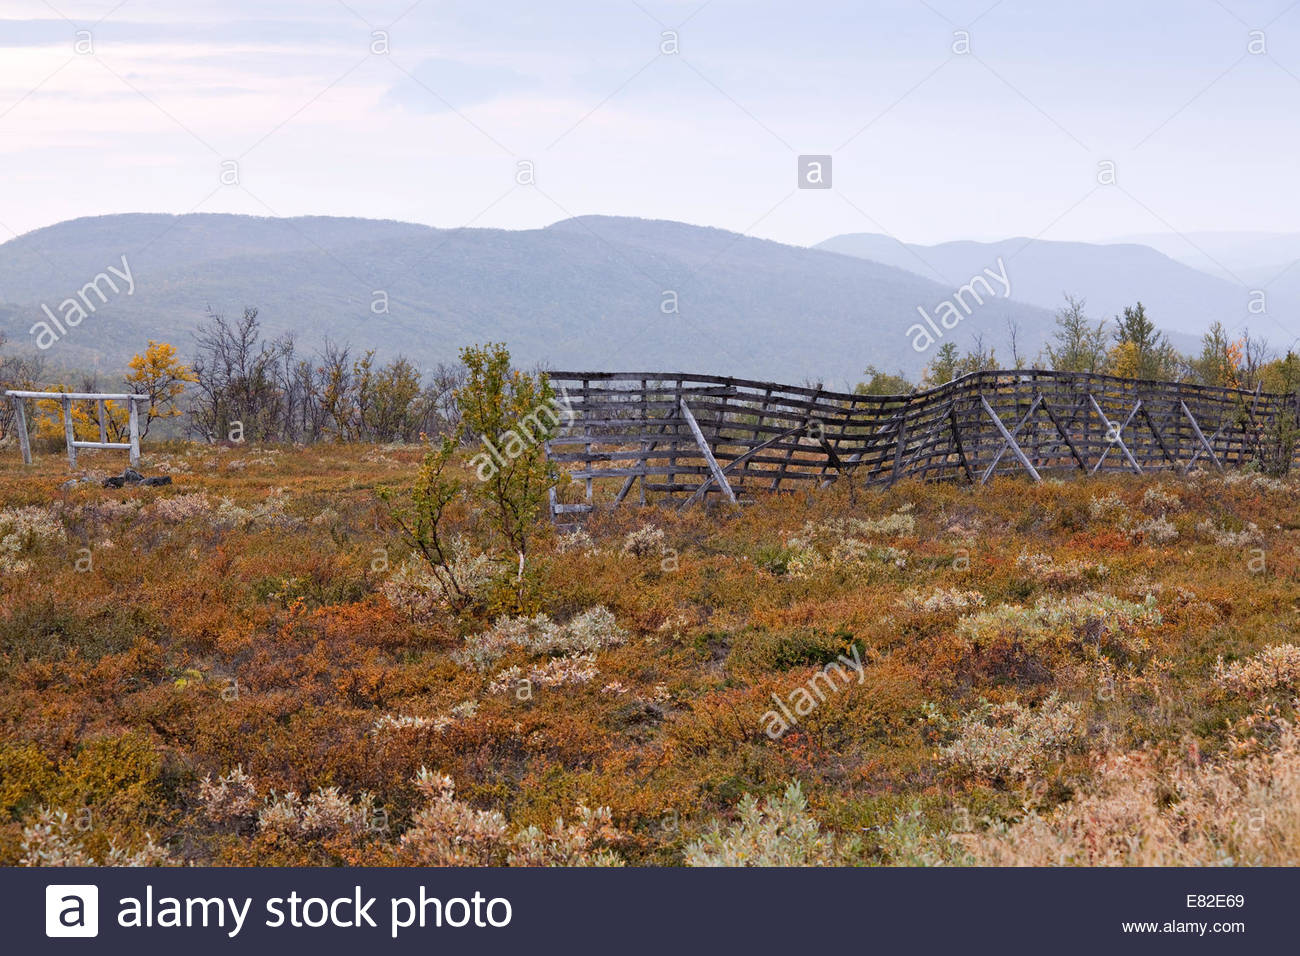 Fall colors in Lapland Finland - Stock Image